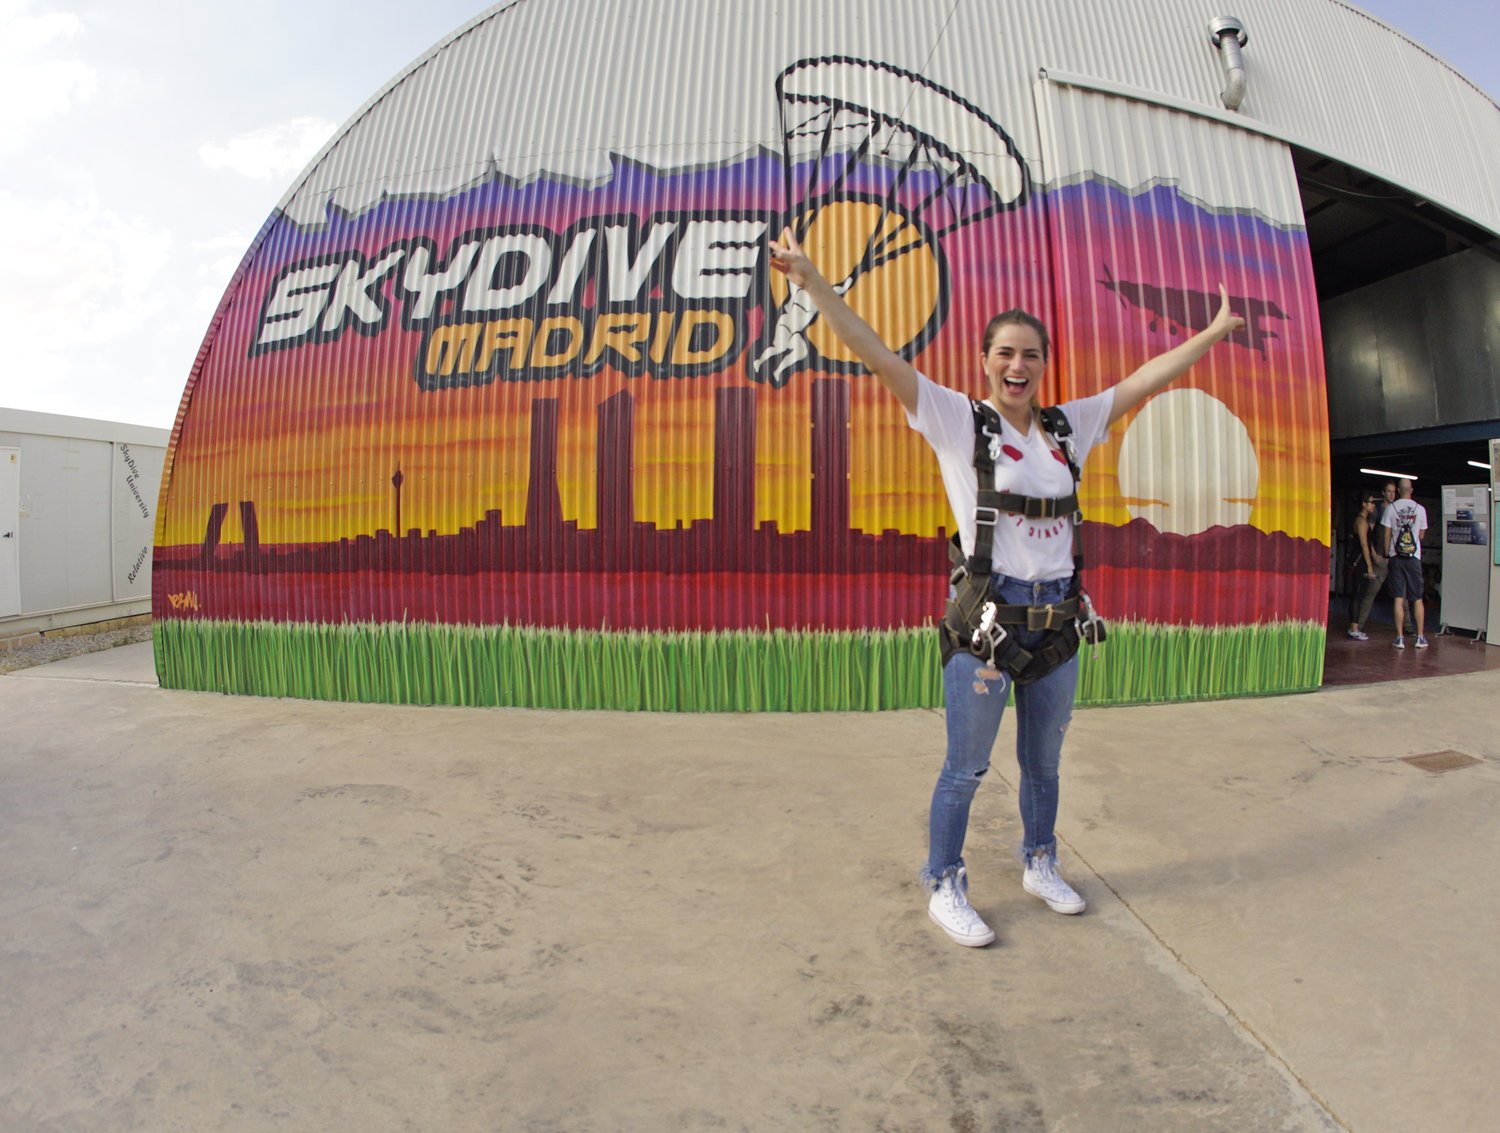 skydive-madrid.jpg